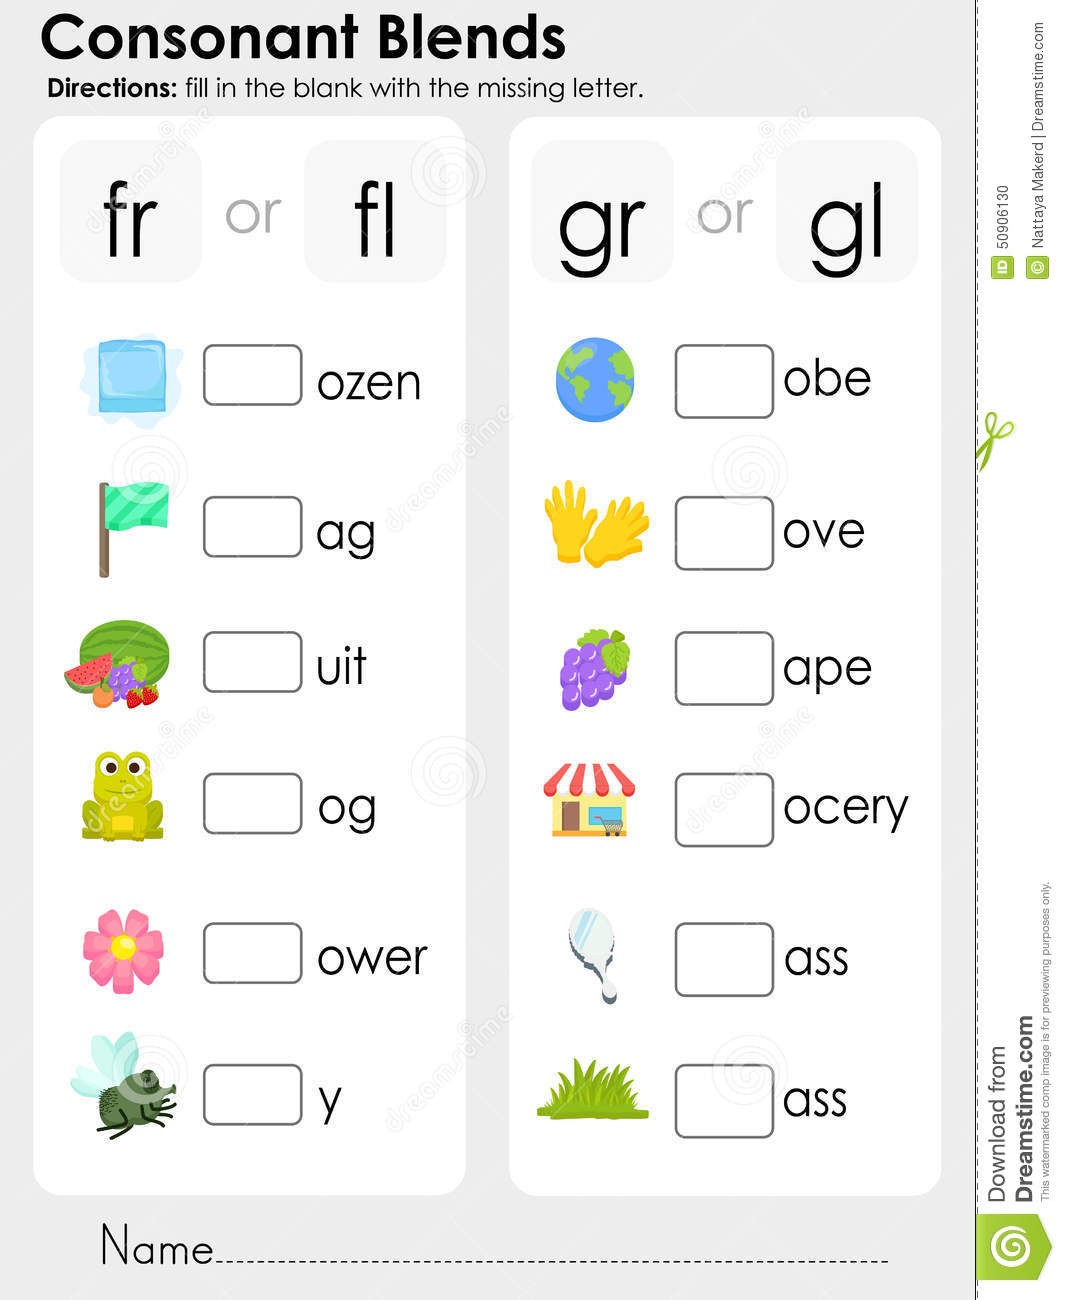 Consonant Blends : Missing Letter - Worksheet For ...